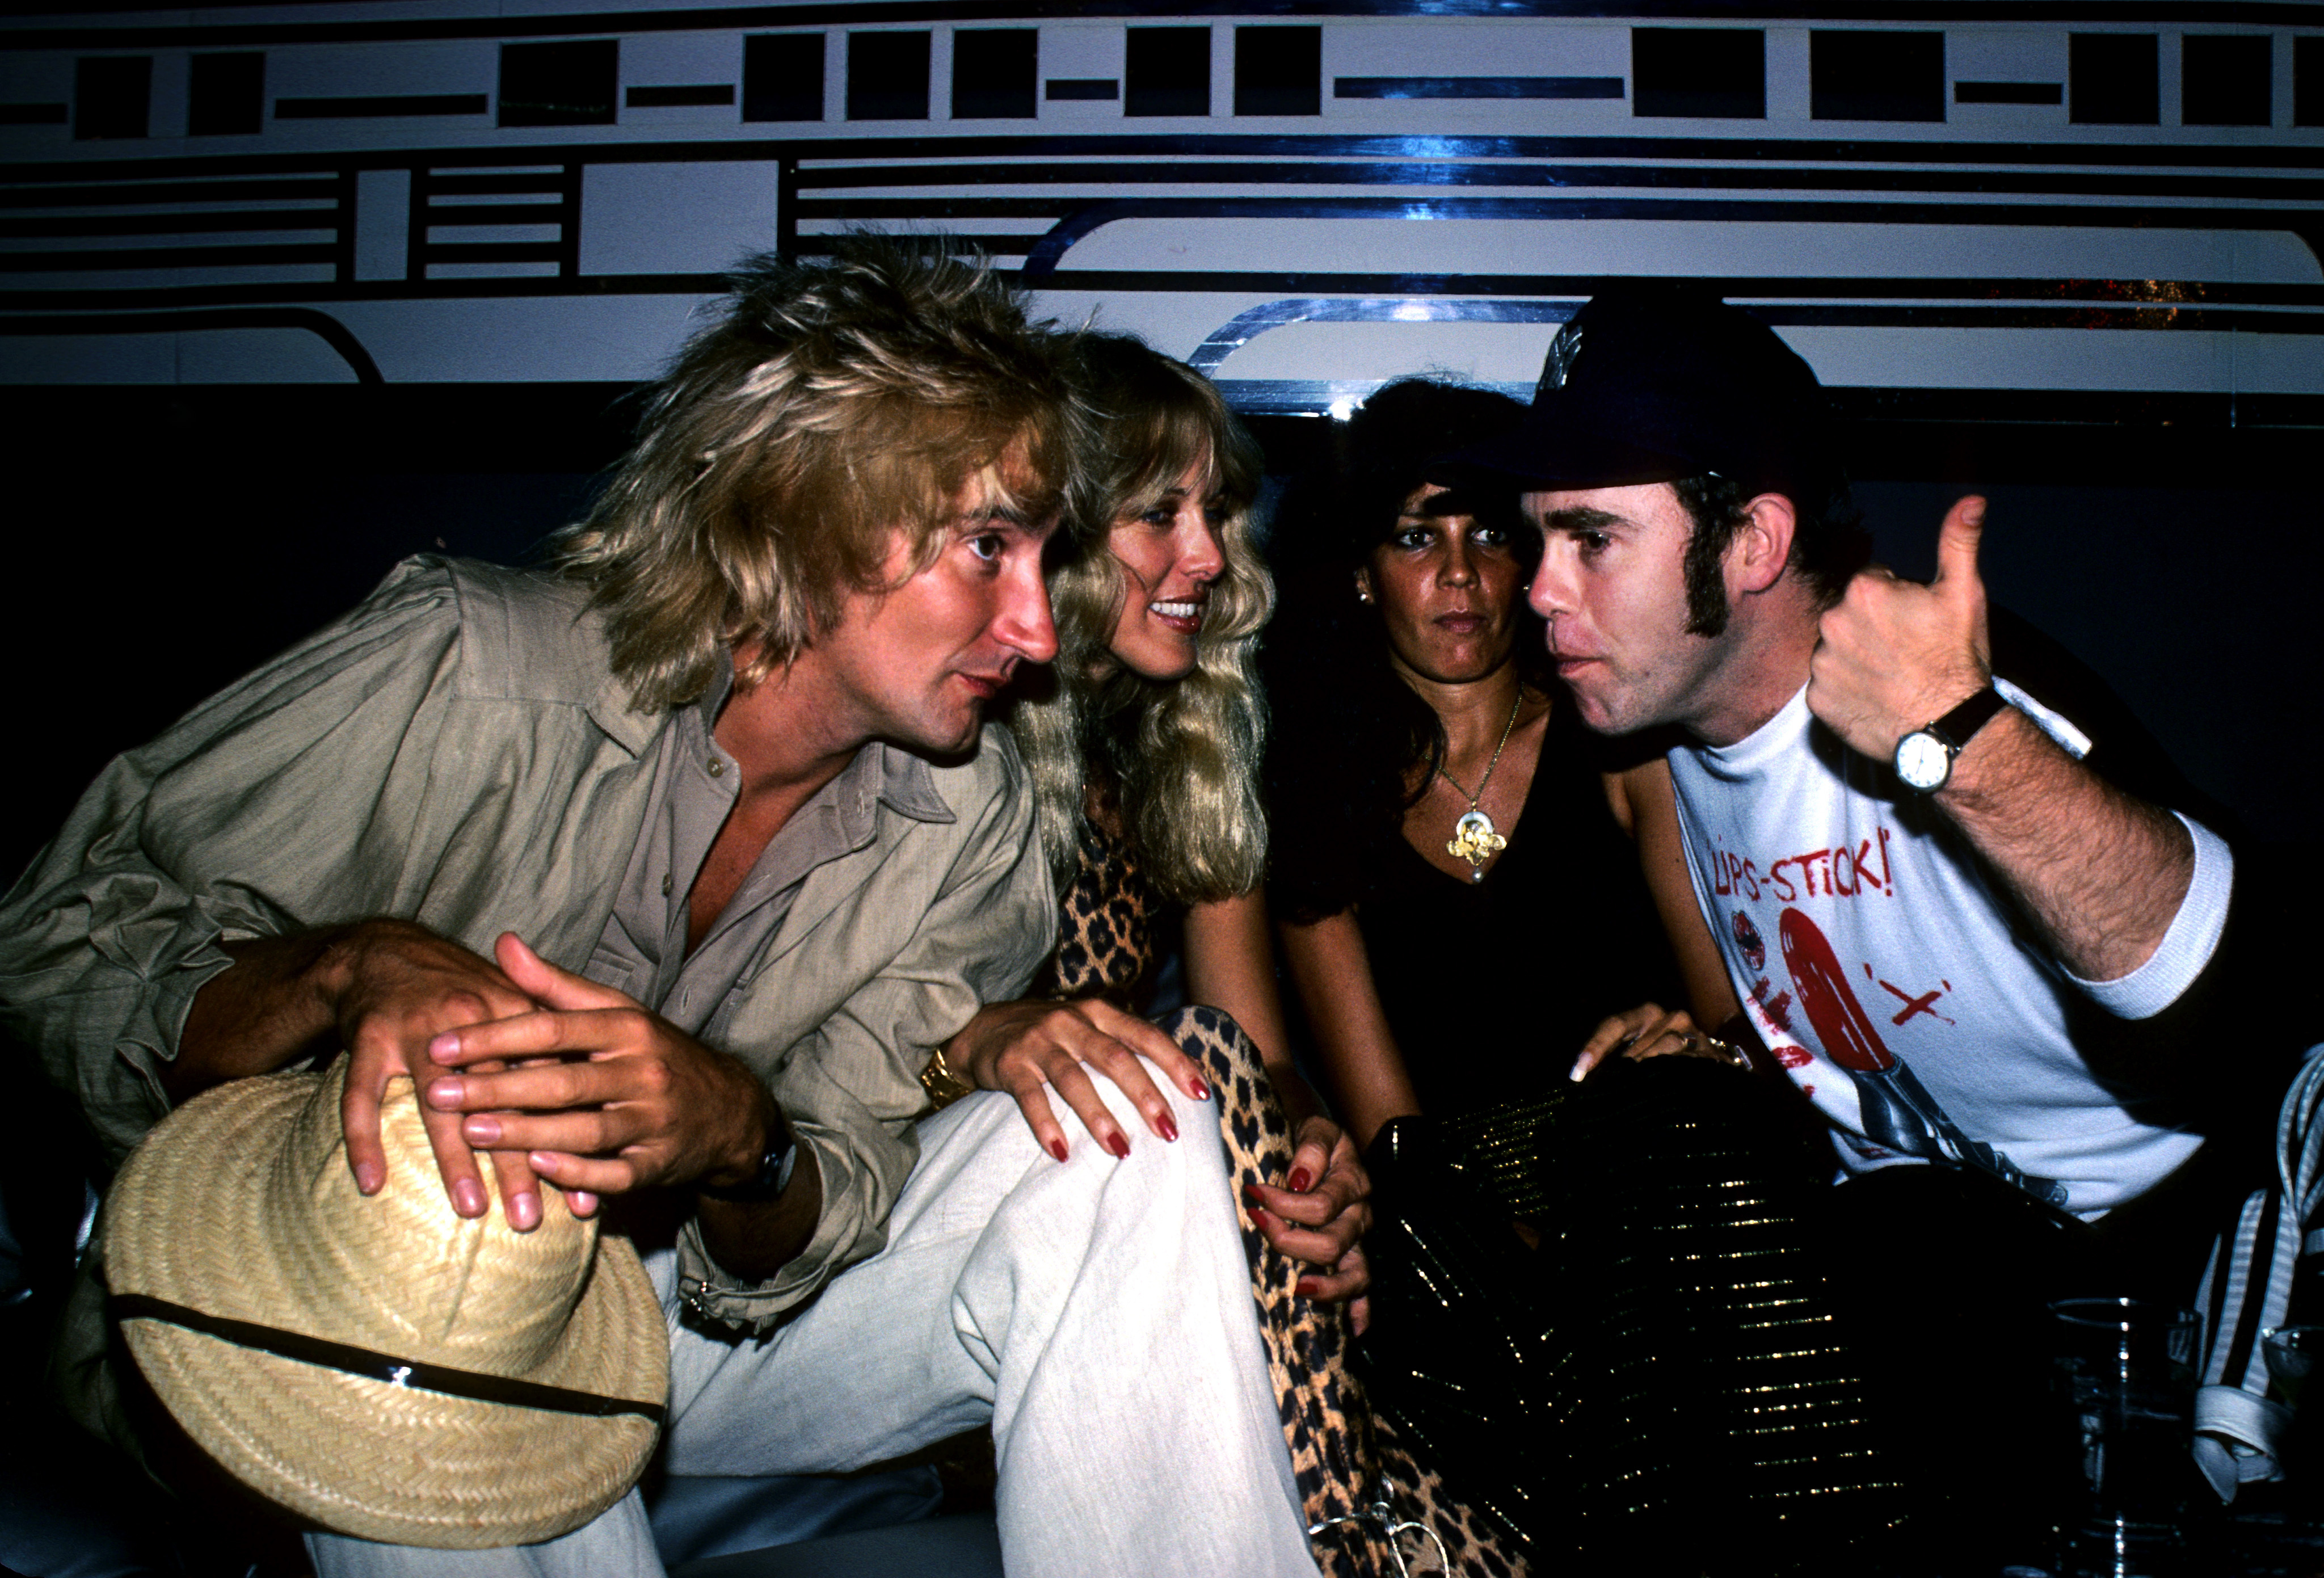 British pop singer Elton John (right), Lana Hamilton (second left), wife of actor George Hamilton, and rock singer Rod Stewart (left) at New York's Studio 54, to celebrate at a party given by RCA Records, who signed John to a contract with the recording company.